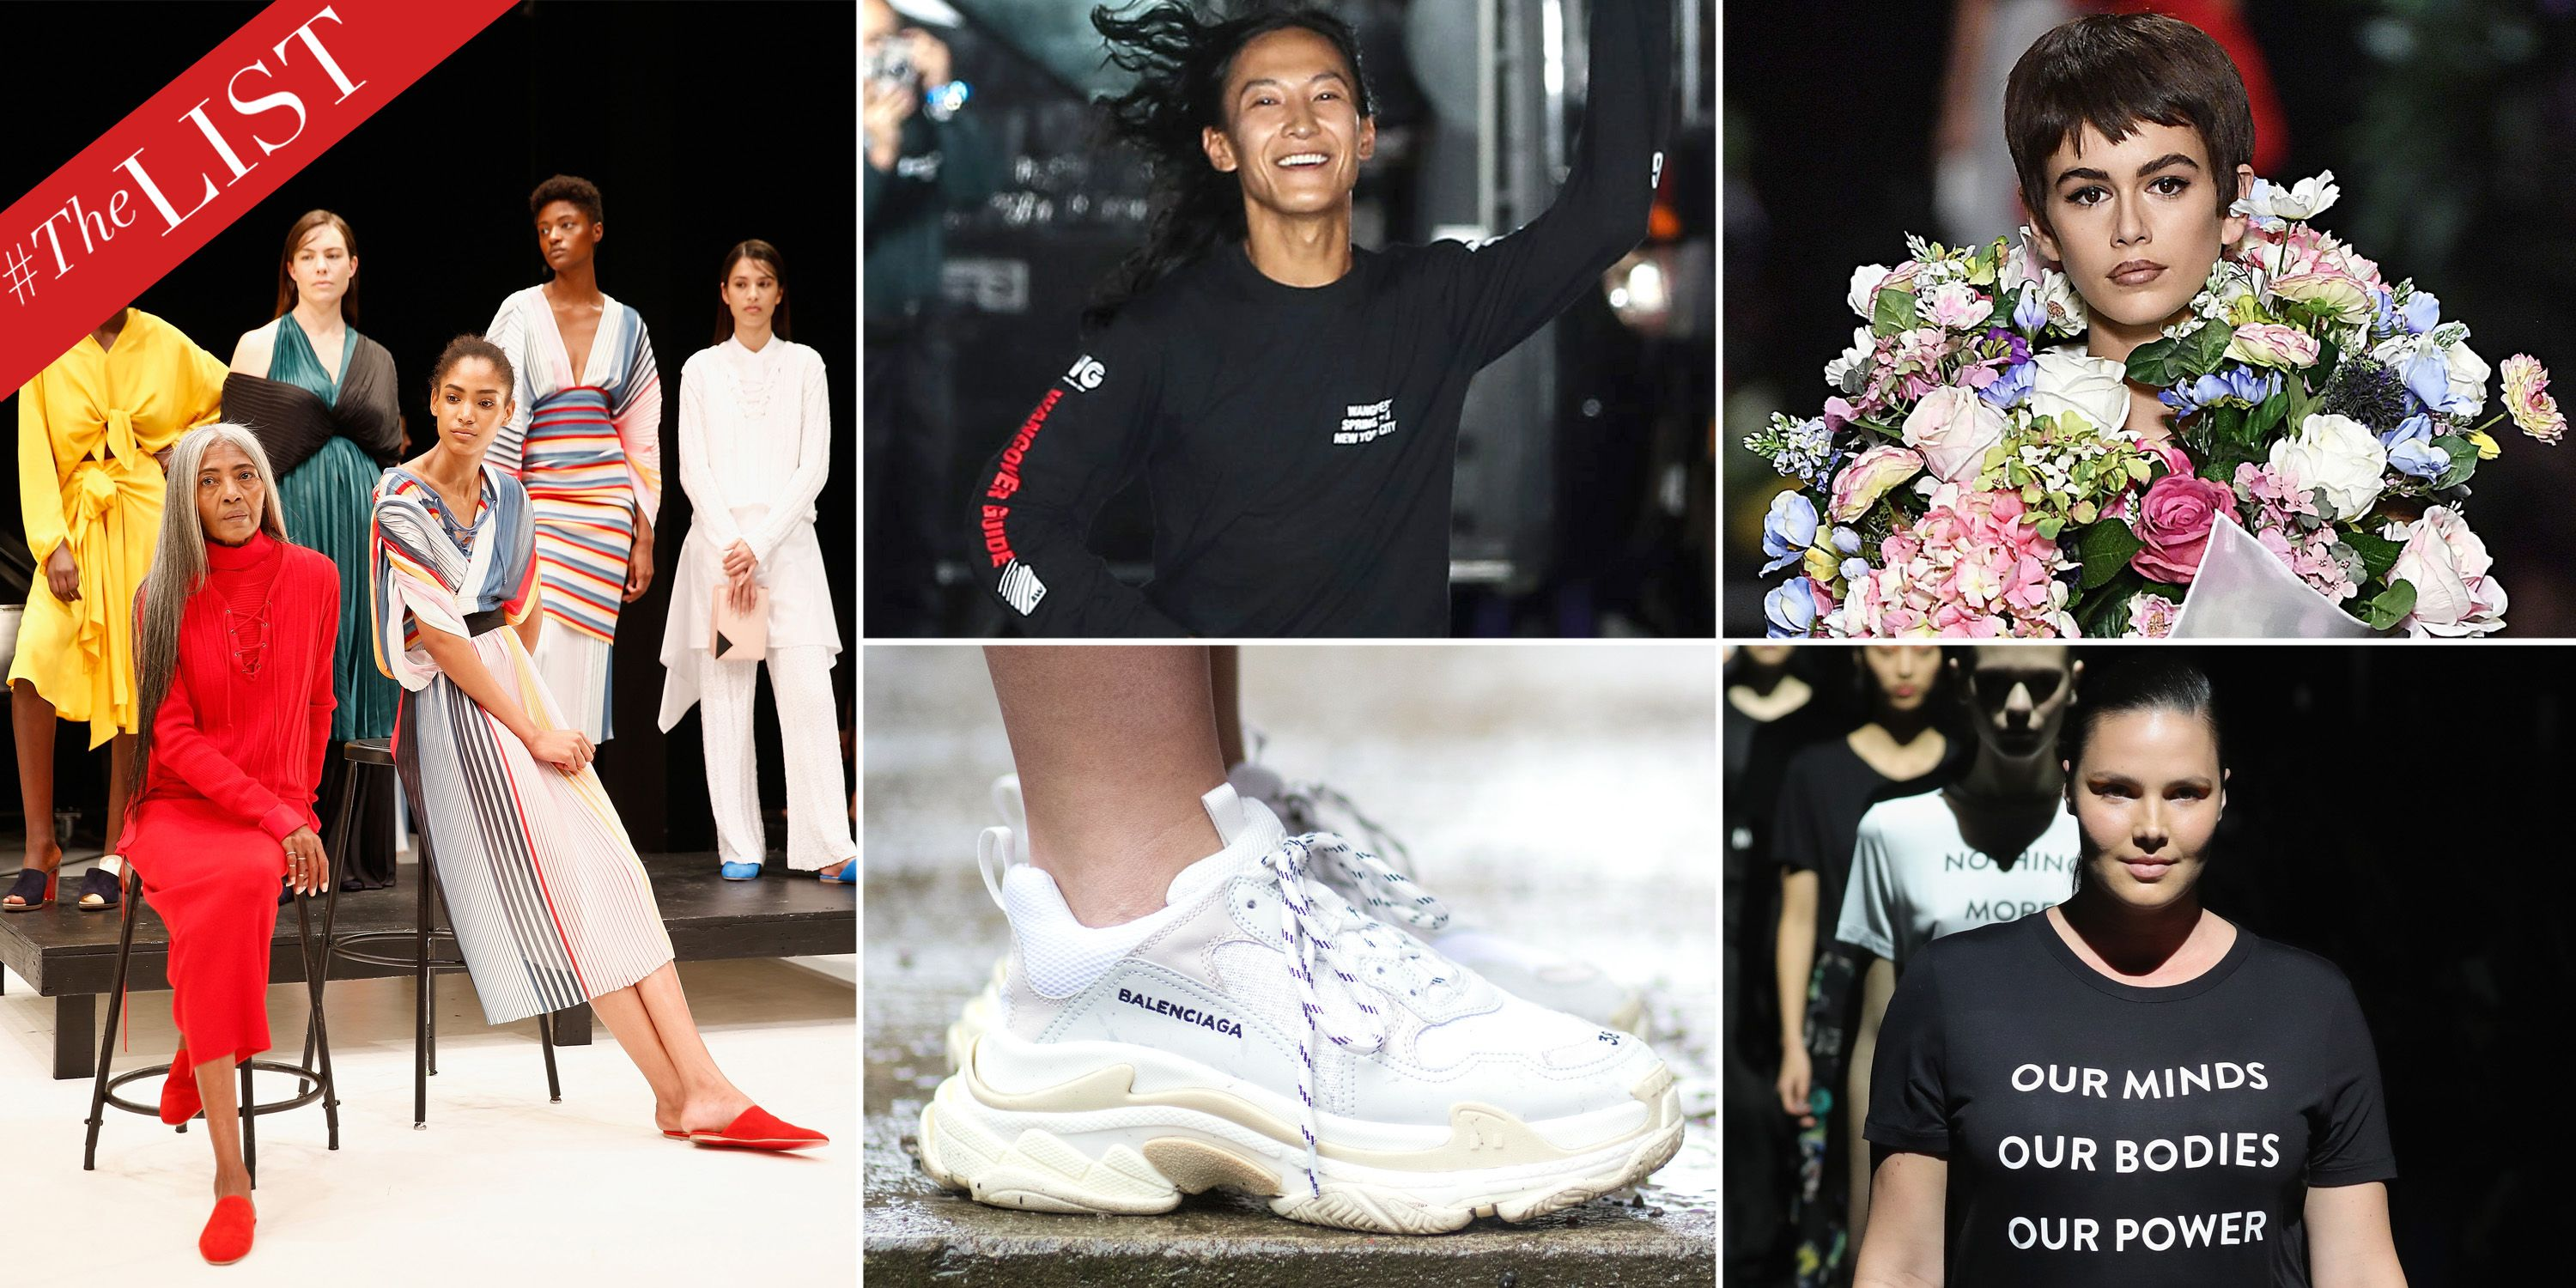 9a5df9cdc4a New York Fashion Week Fall 2018 Events - NYFW Fall 2018 Overview